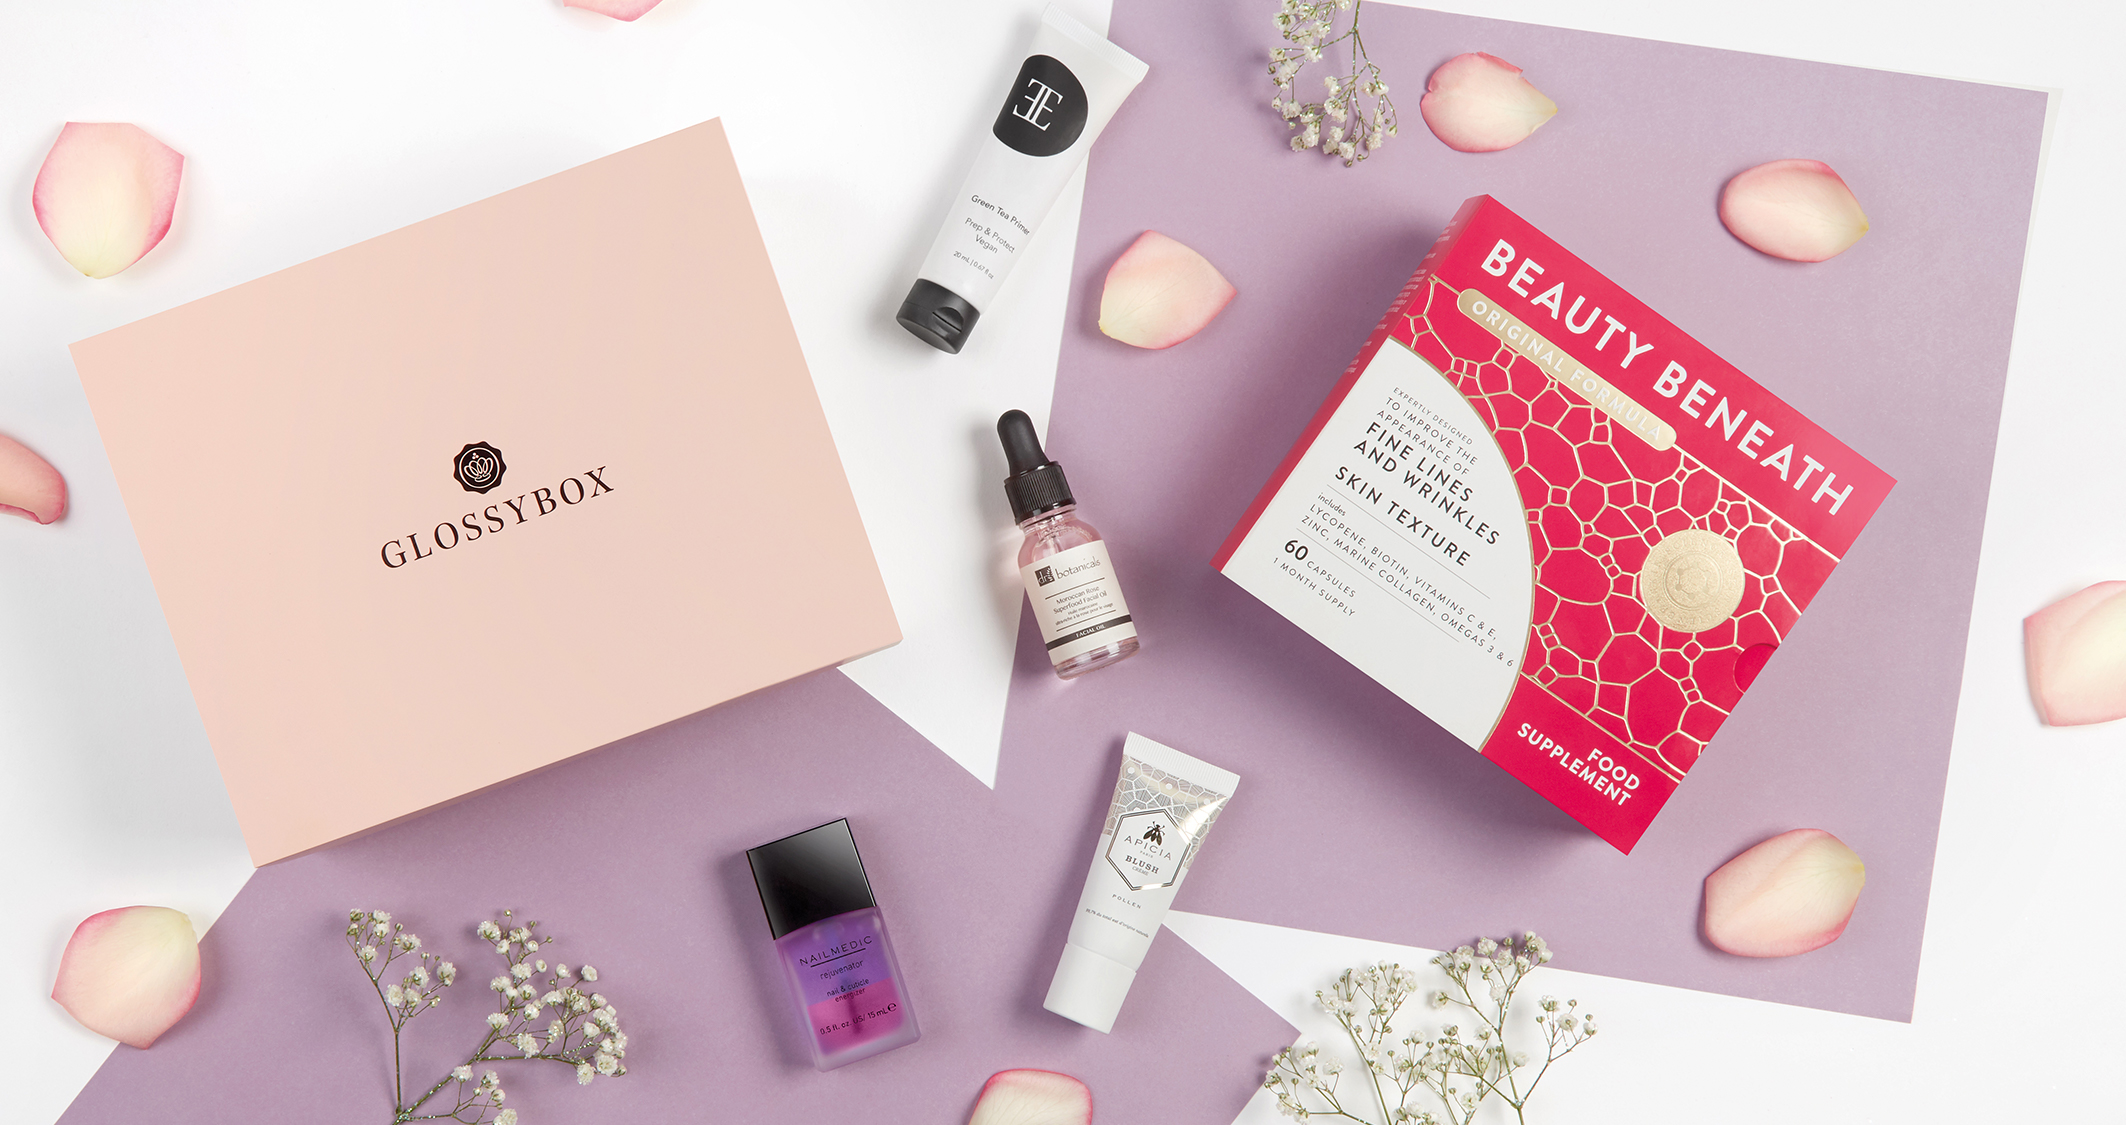 january glossybox review